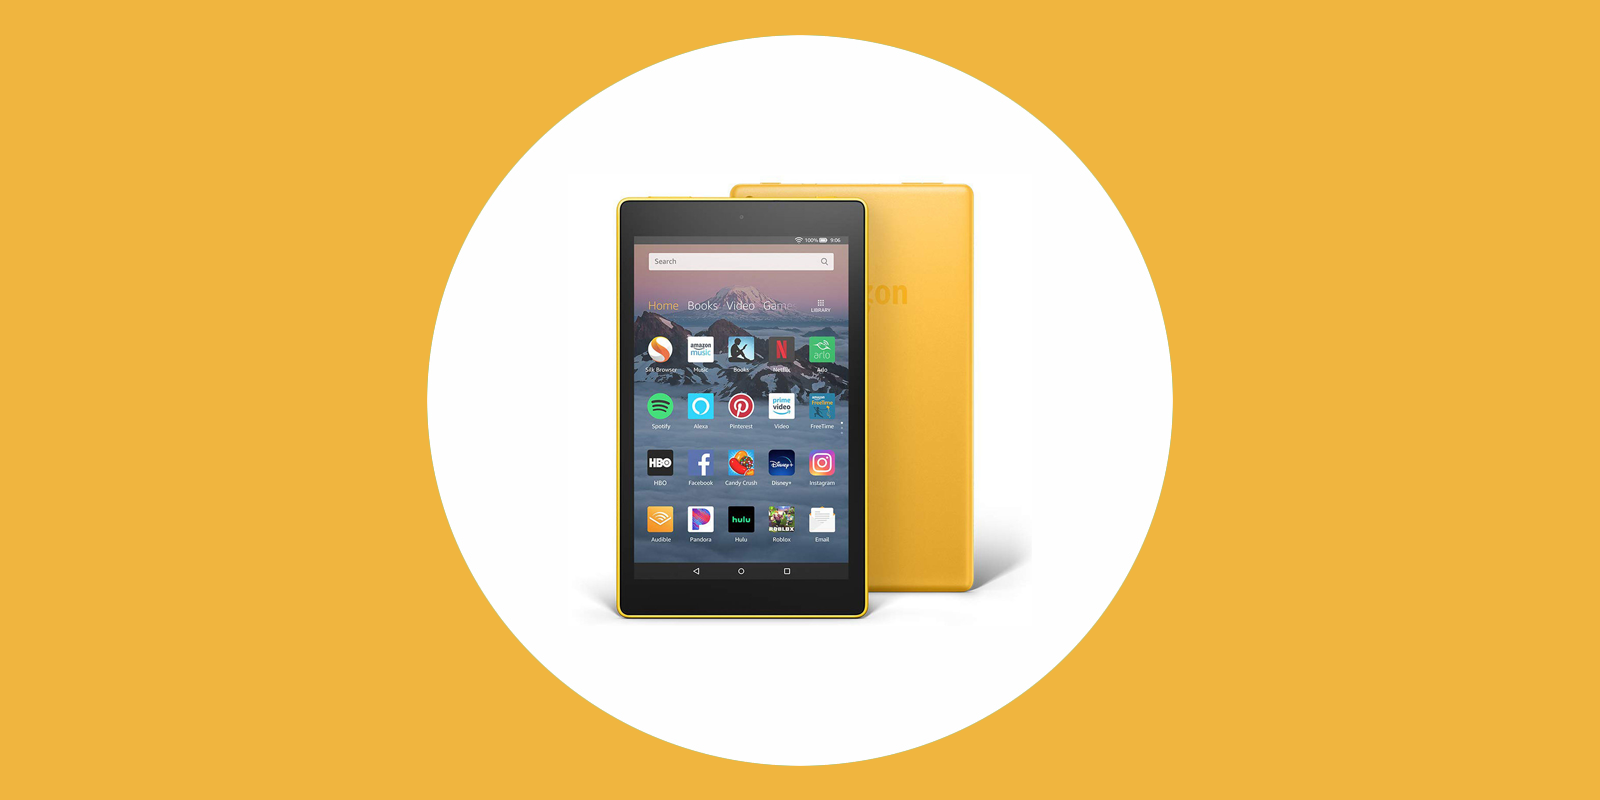 Get a discounted Fire tablet on Amazon